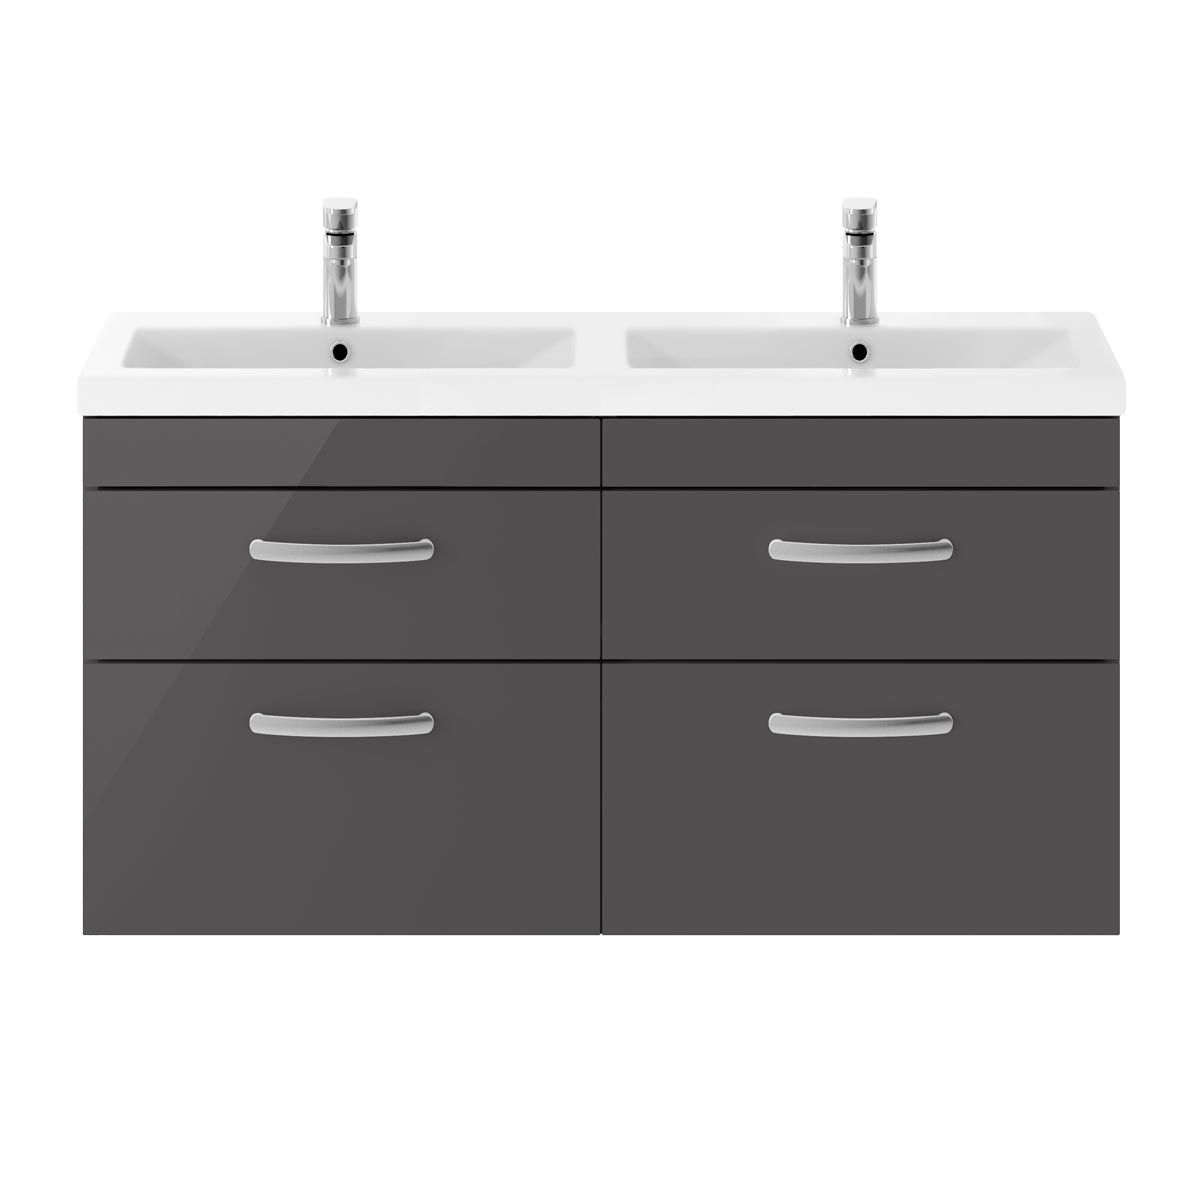 Nuie Athena Gloss Grey 4 Drawer Wall Hung Vanity Unit with Ceramic Double Basin 1200mm